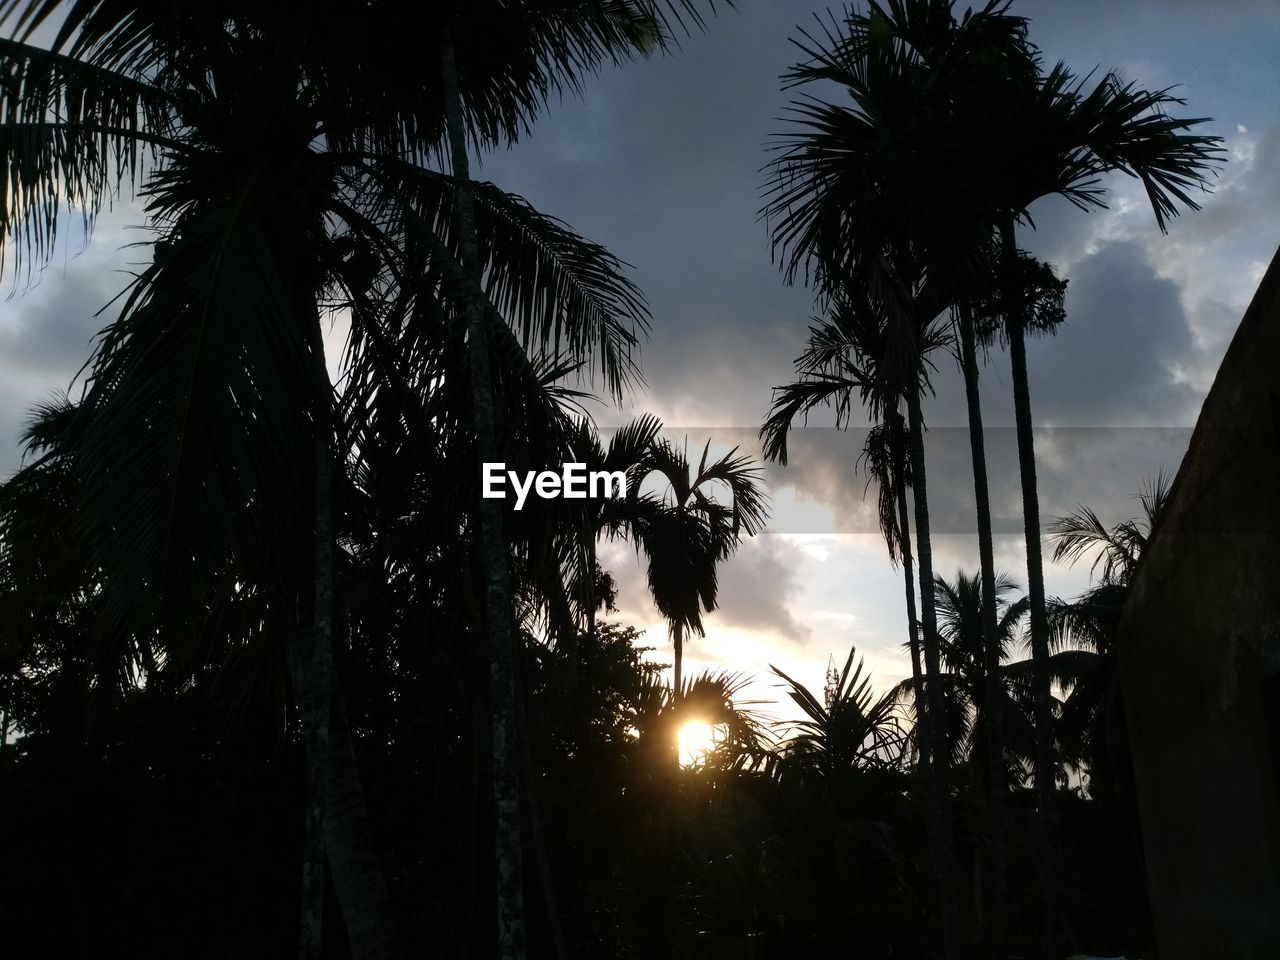 sky, tree, plant, silhouette, sunset, beauty in nature, palm tree, growth, tropical climate, tranquility, tranquil scene, nature, scenics - nature, no people, cloud - sky, sunlight, low angle view, sun, tree trunk, trunk, outdoors, lens flare, coconut palm tree